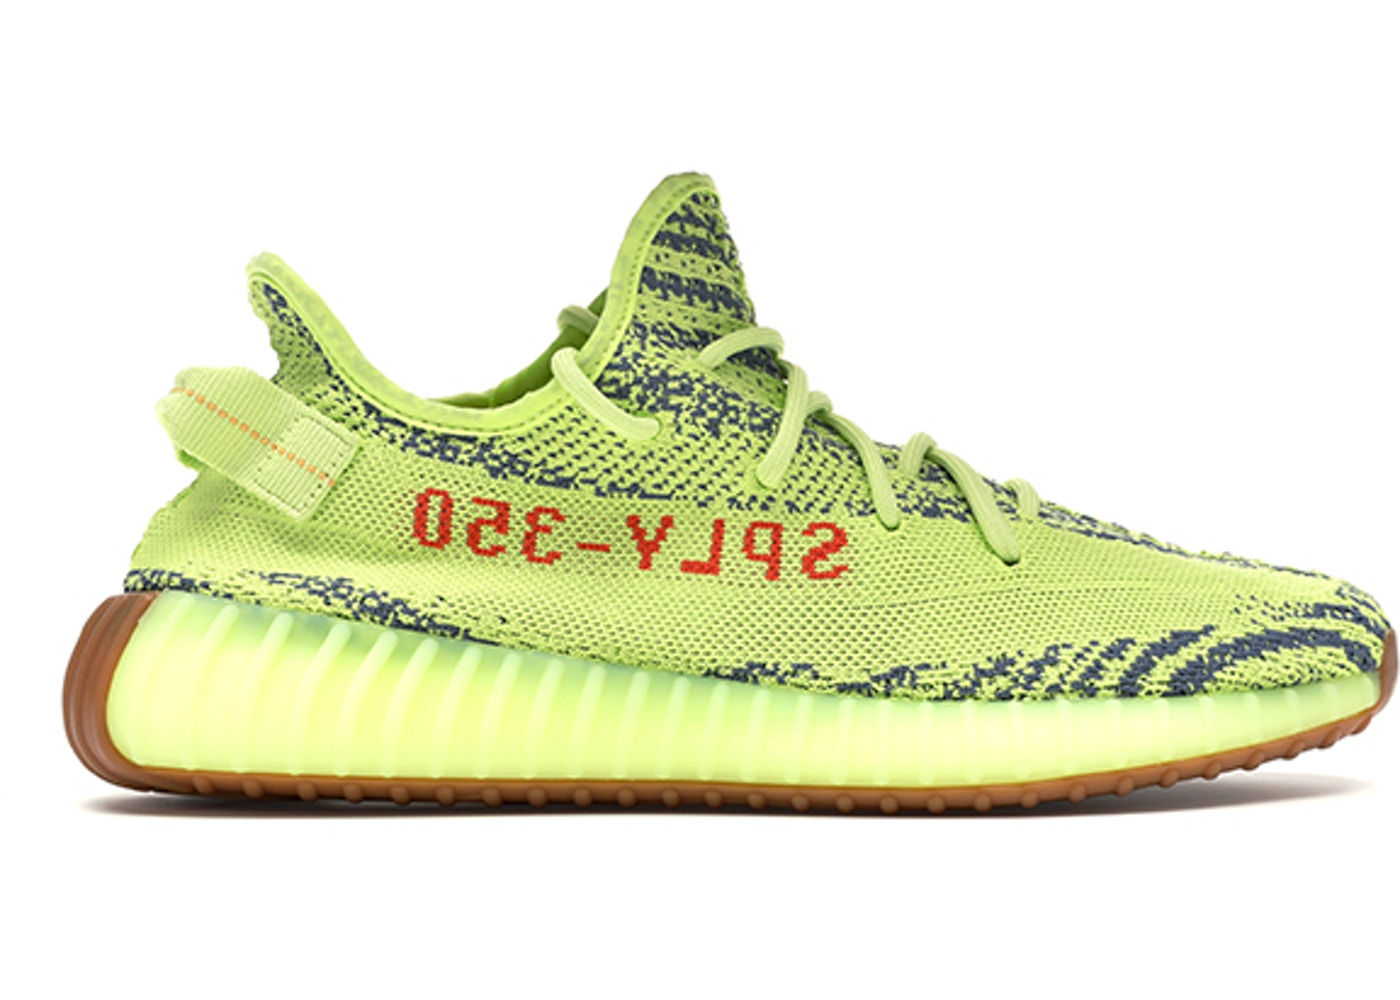 727935c87afa6 adidas Yeezy Boost 350 V2 Semi Frozen Yellow - B37572